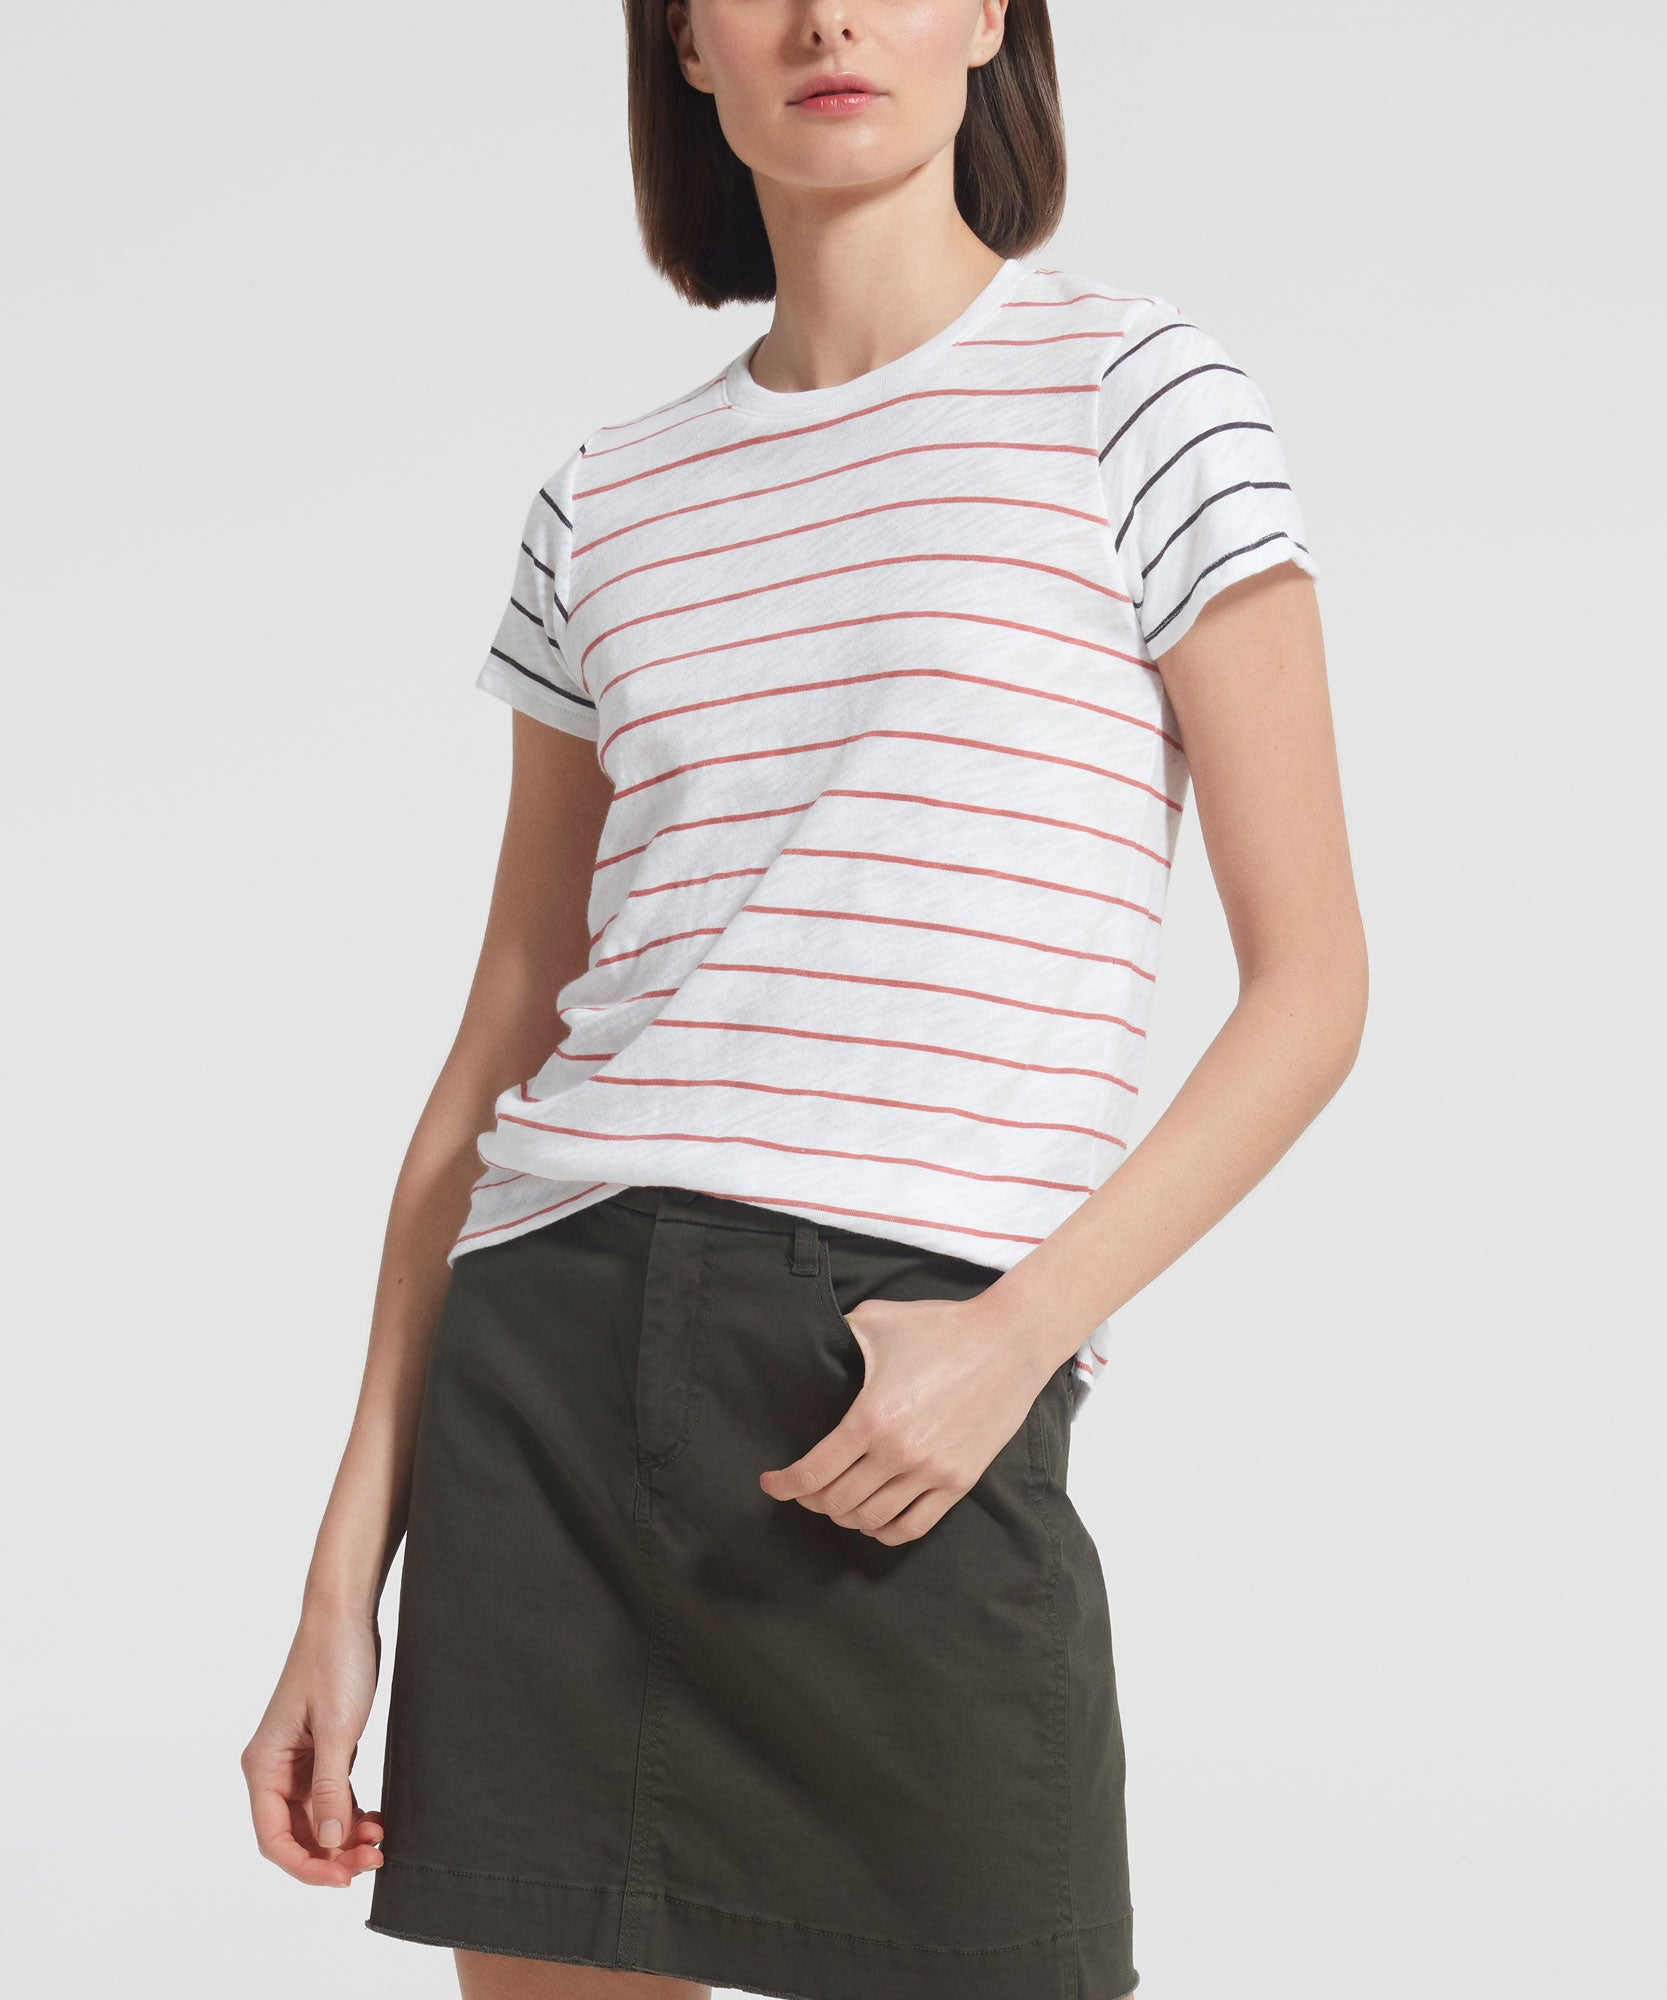 Striped Slub Jersey Schoolboy Crew Neck Tee - Women's Cotton Short Sleeve T-shirt by ATM Anthony Thomas Melillo